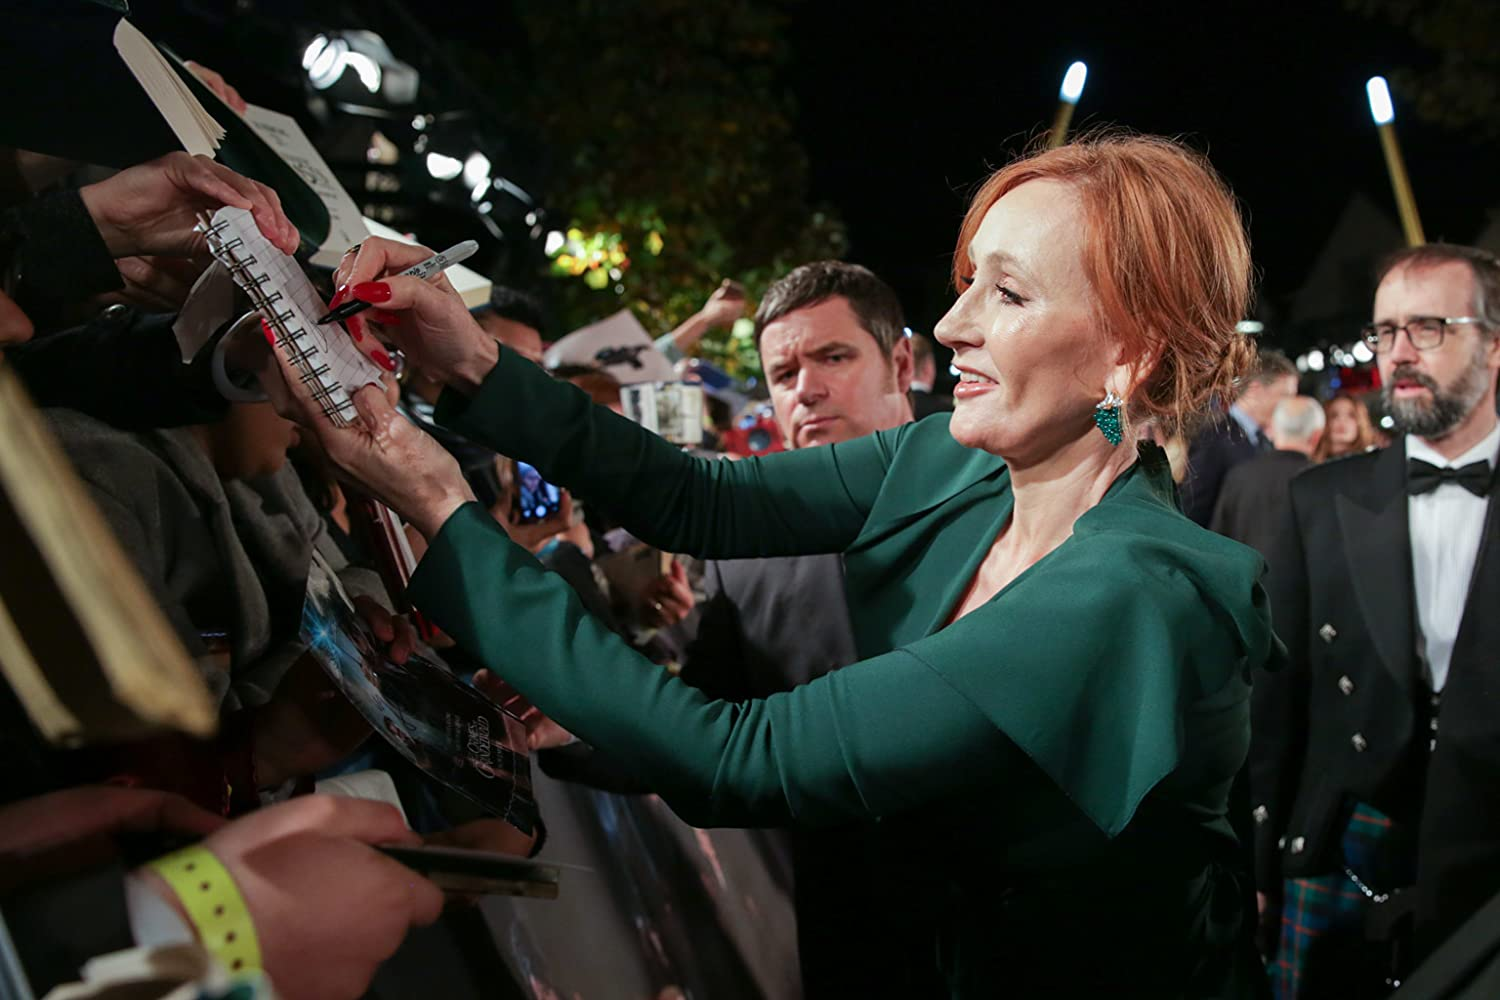 J.K. Rowling at an event for Fantastic Beasts: The Crimes of Grindelwald (2018)